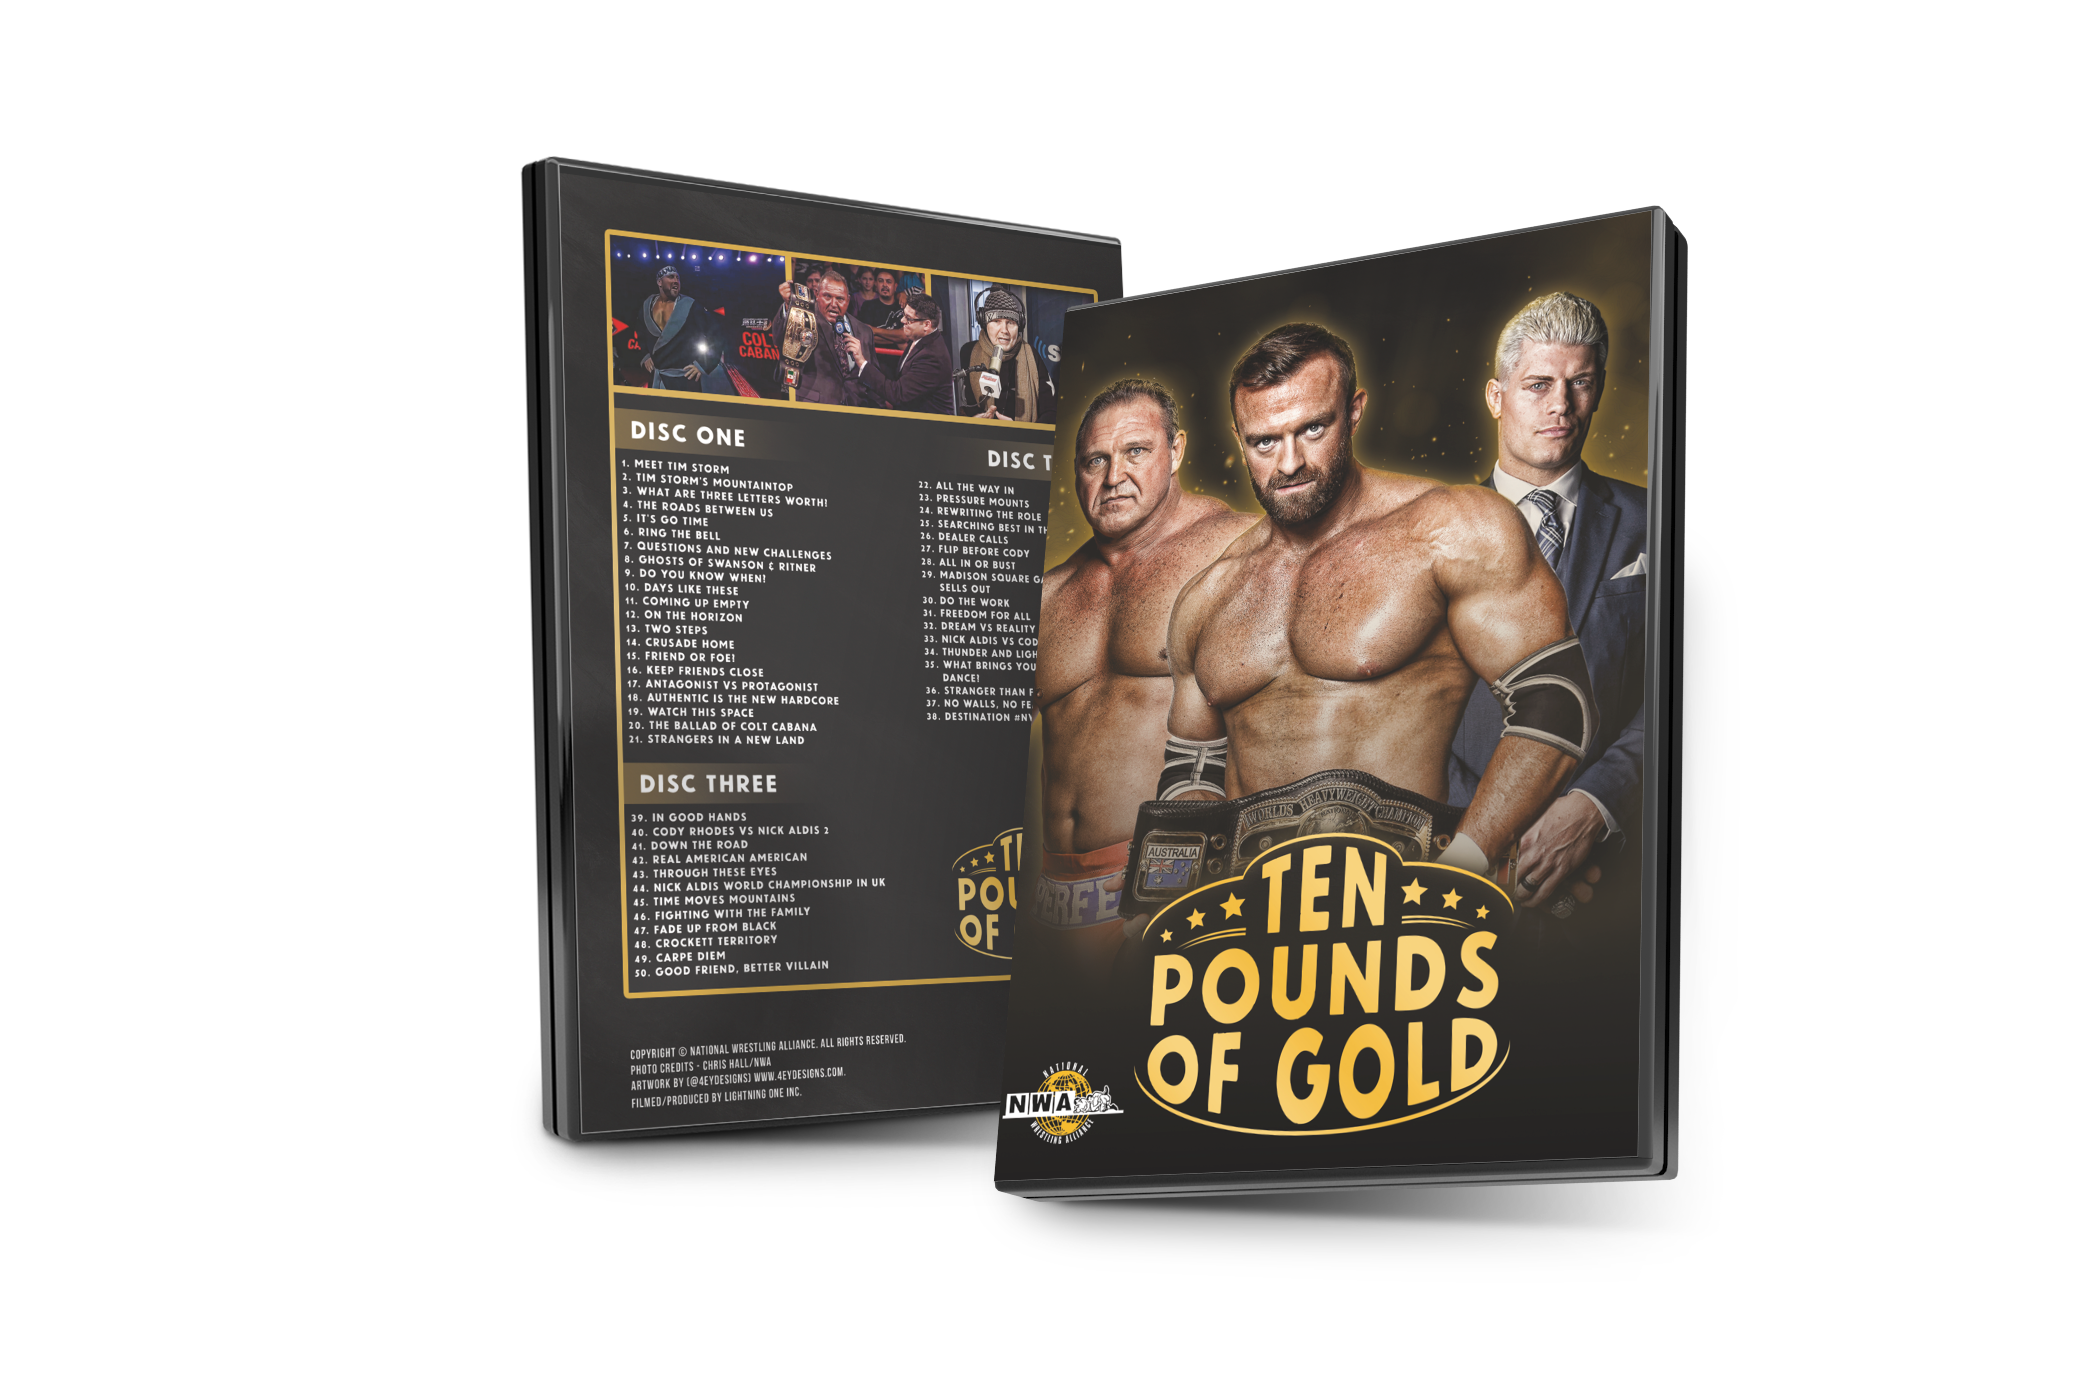 Own Ten Pounds of Gold - 3 Disc DVD